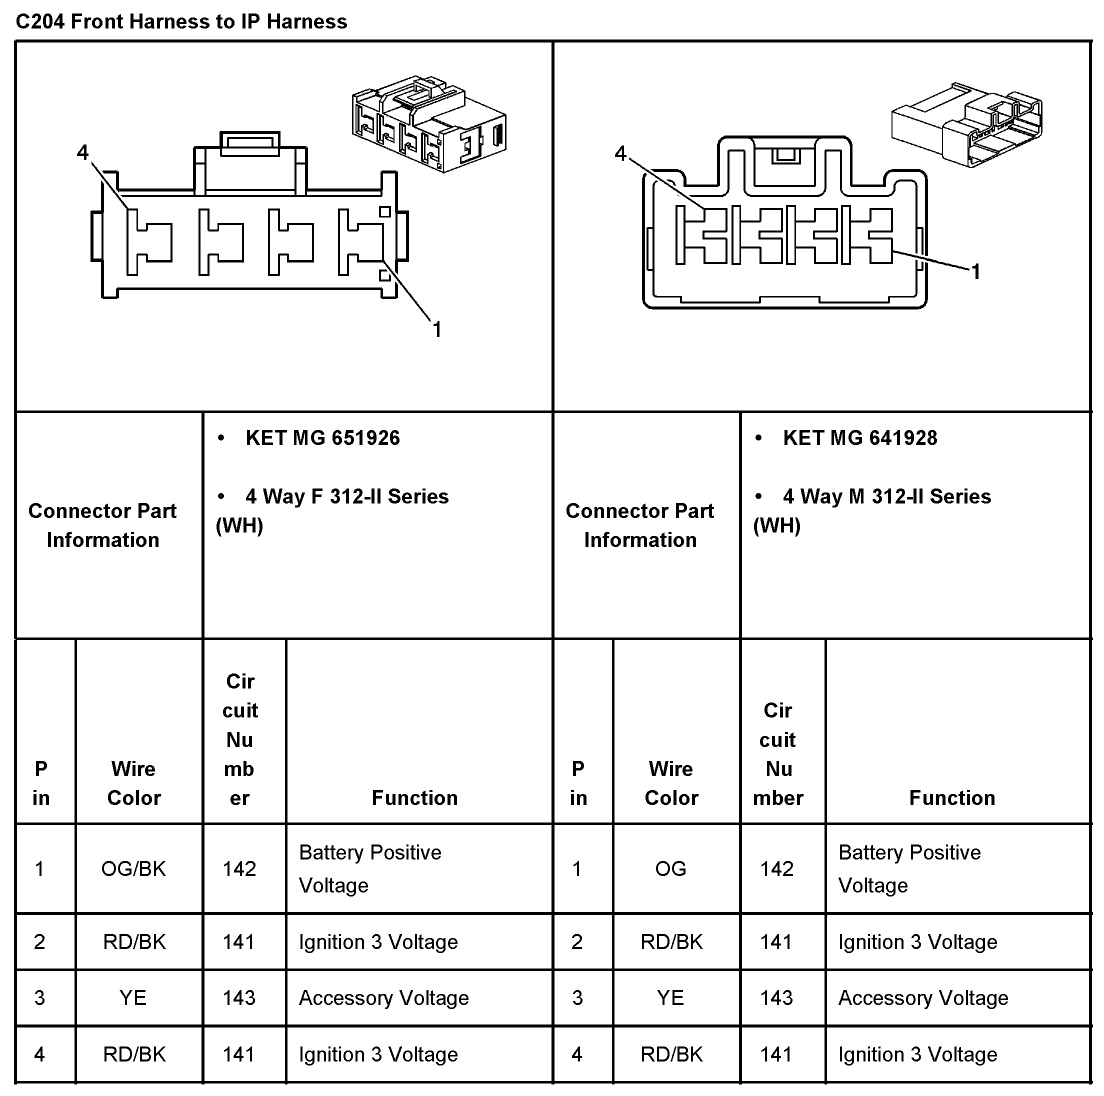 2005 Aveo Master Connector List And Diagrams 2010 Chevy Engine Diagram The Following User Says Thank You To Cnelon85 For This Useful Post